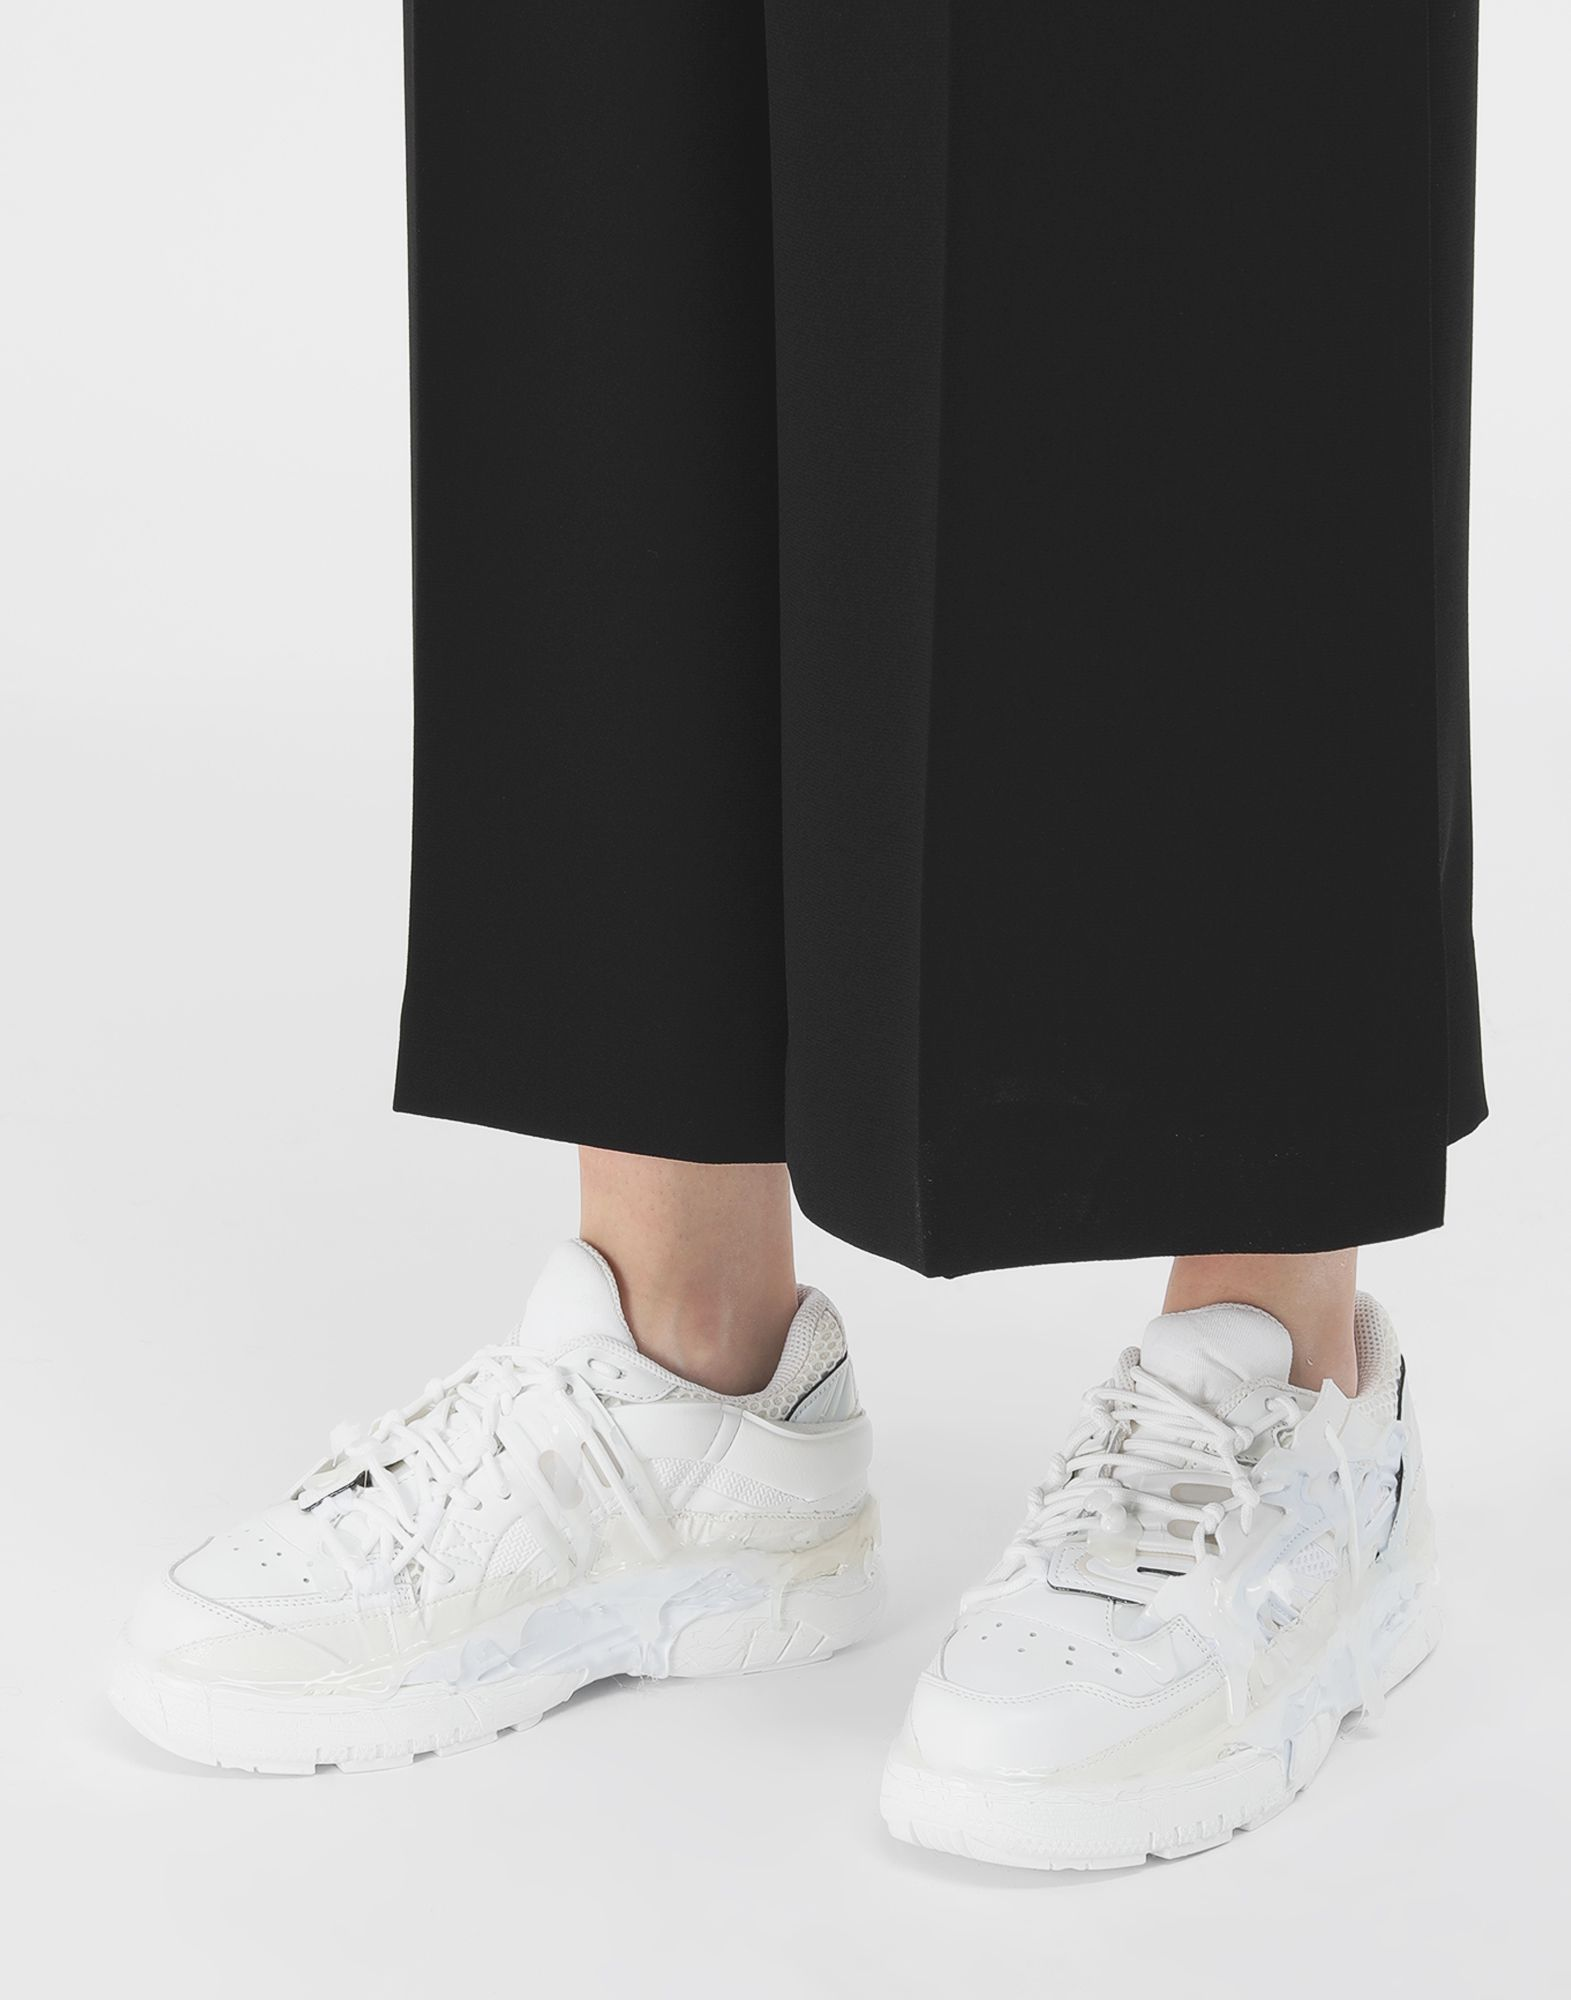 MAISON MARGIELA Sneakers Fusion Sneakers Donna r